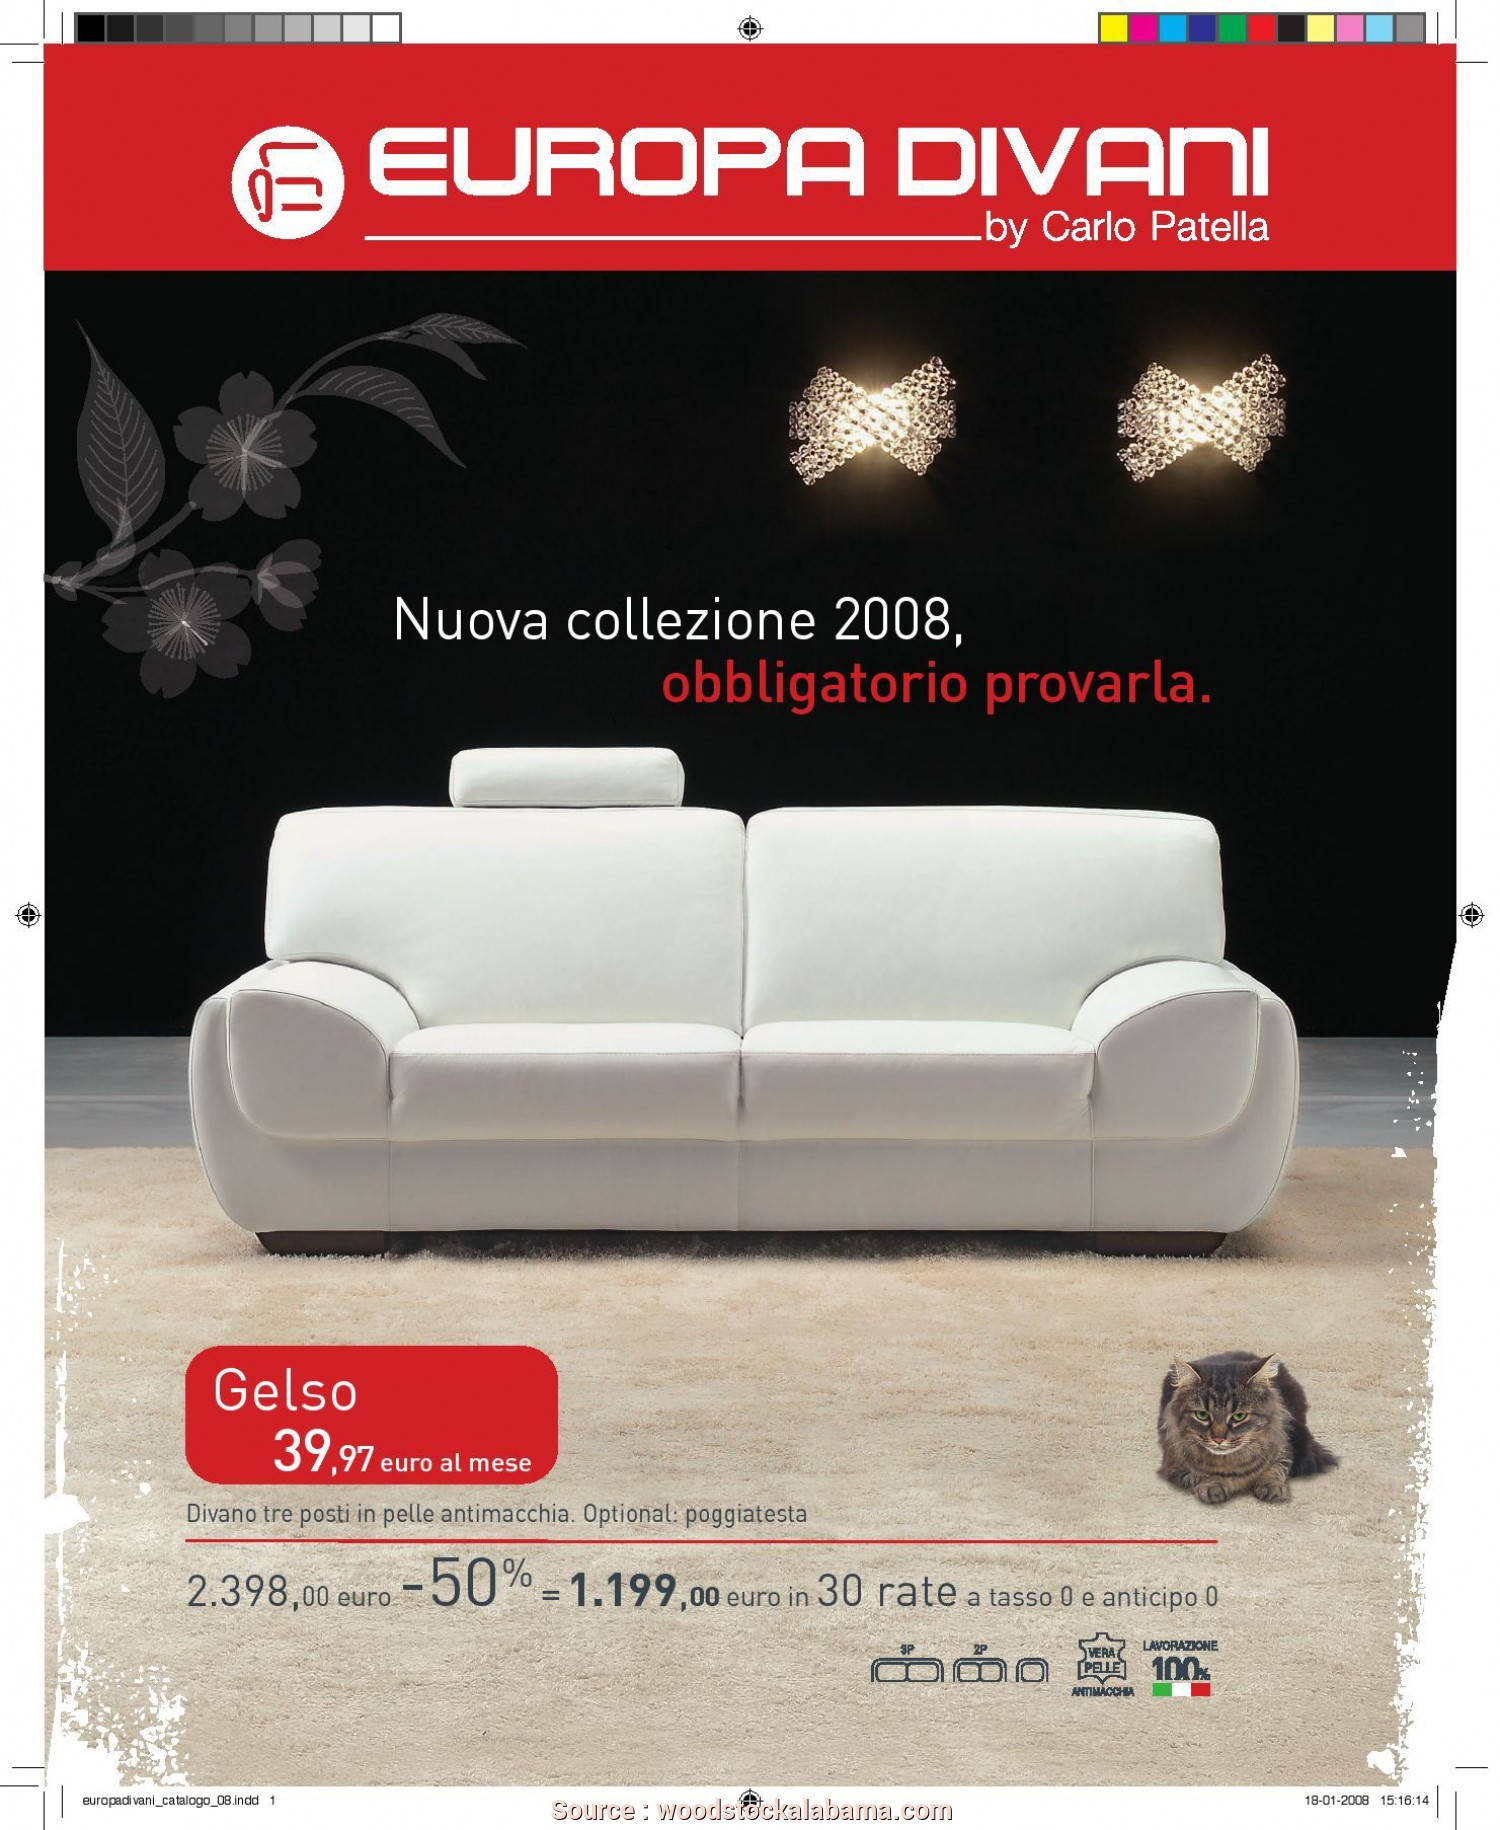 Divano Mondo Convenienza Rate, Divertente Europadivani By Europadivani Issuu